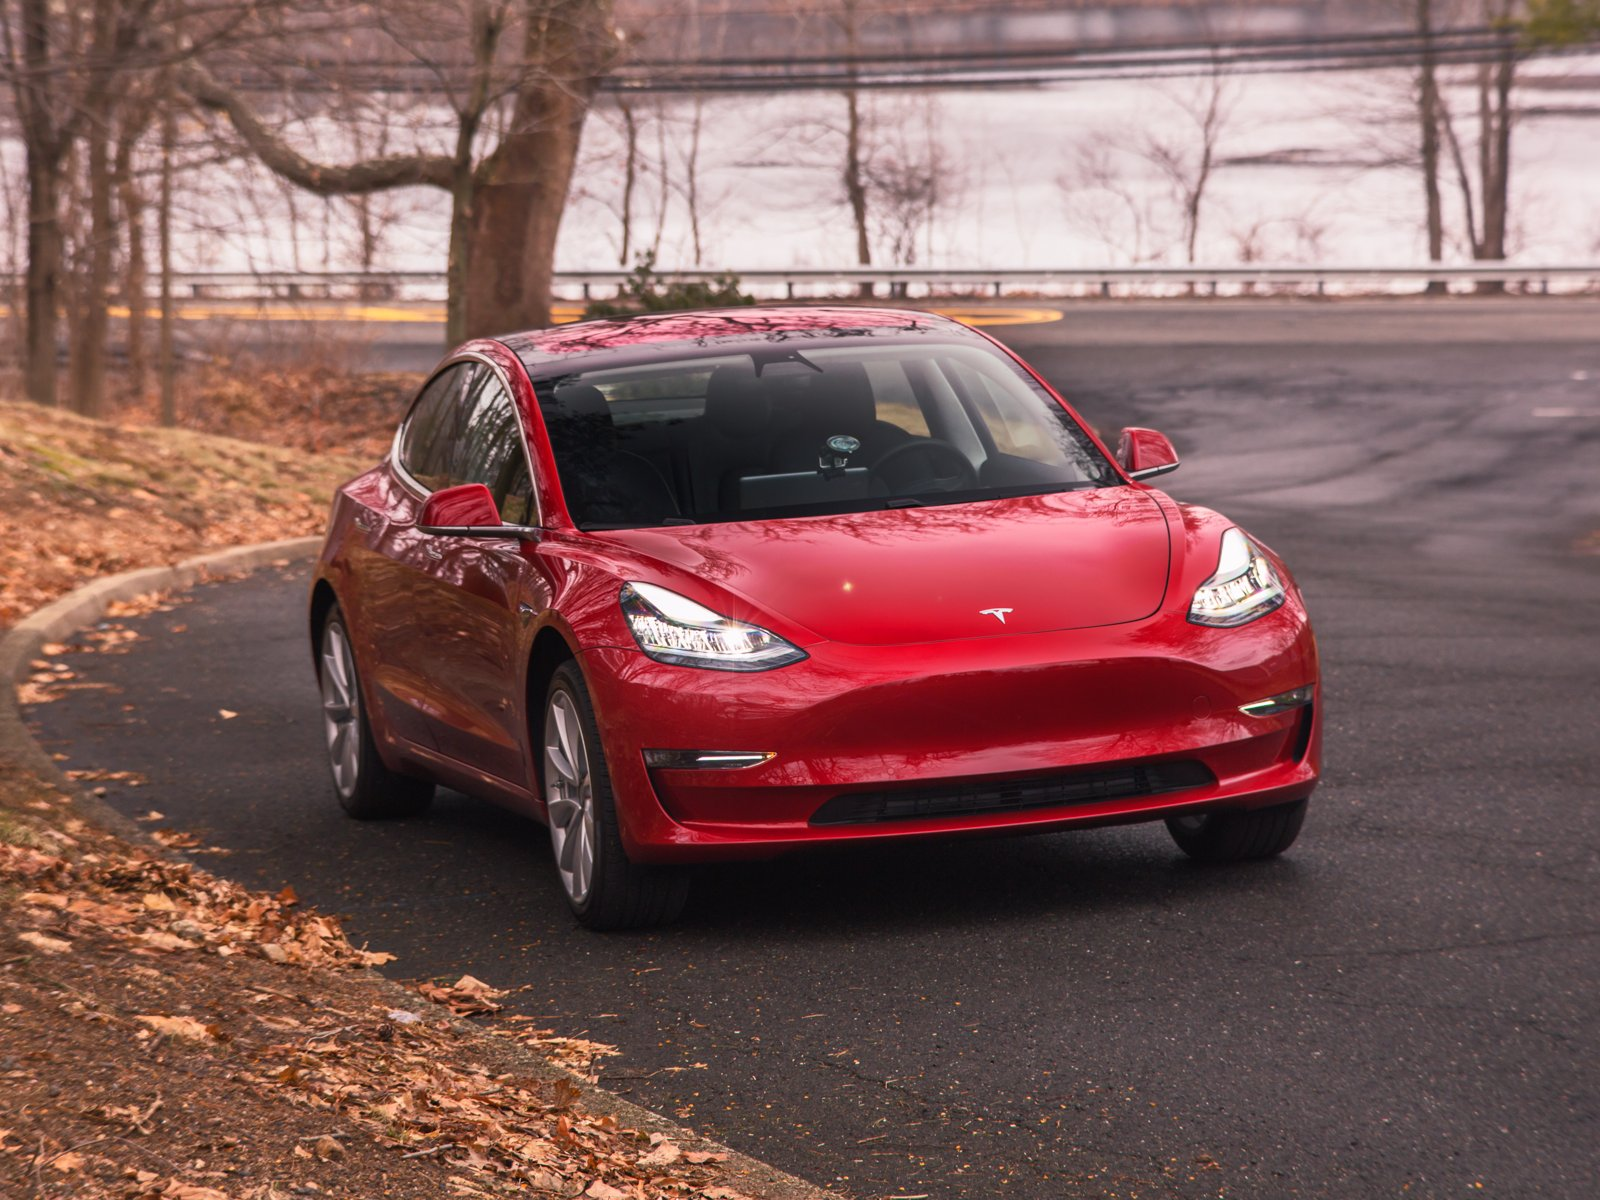 Tesla's Model 3 has earned Consumer Reports' recommendation